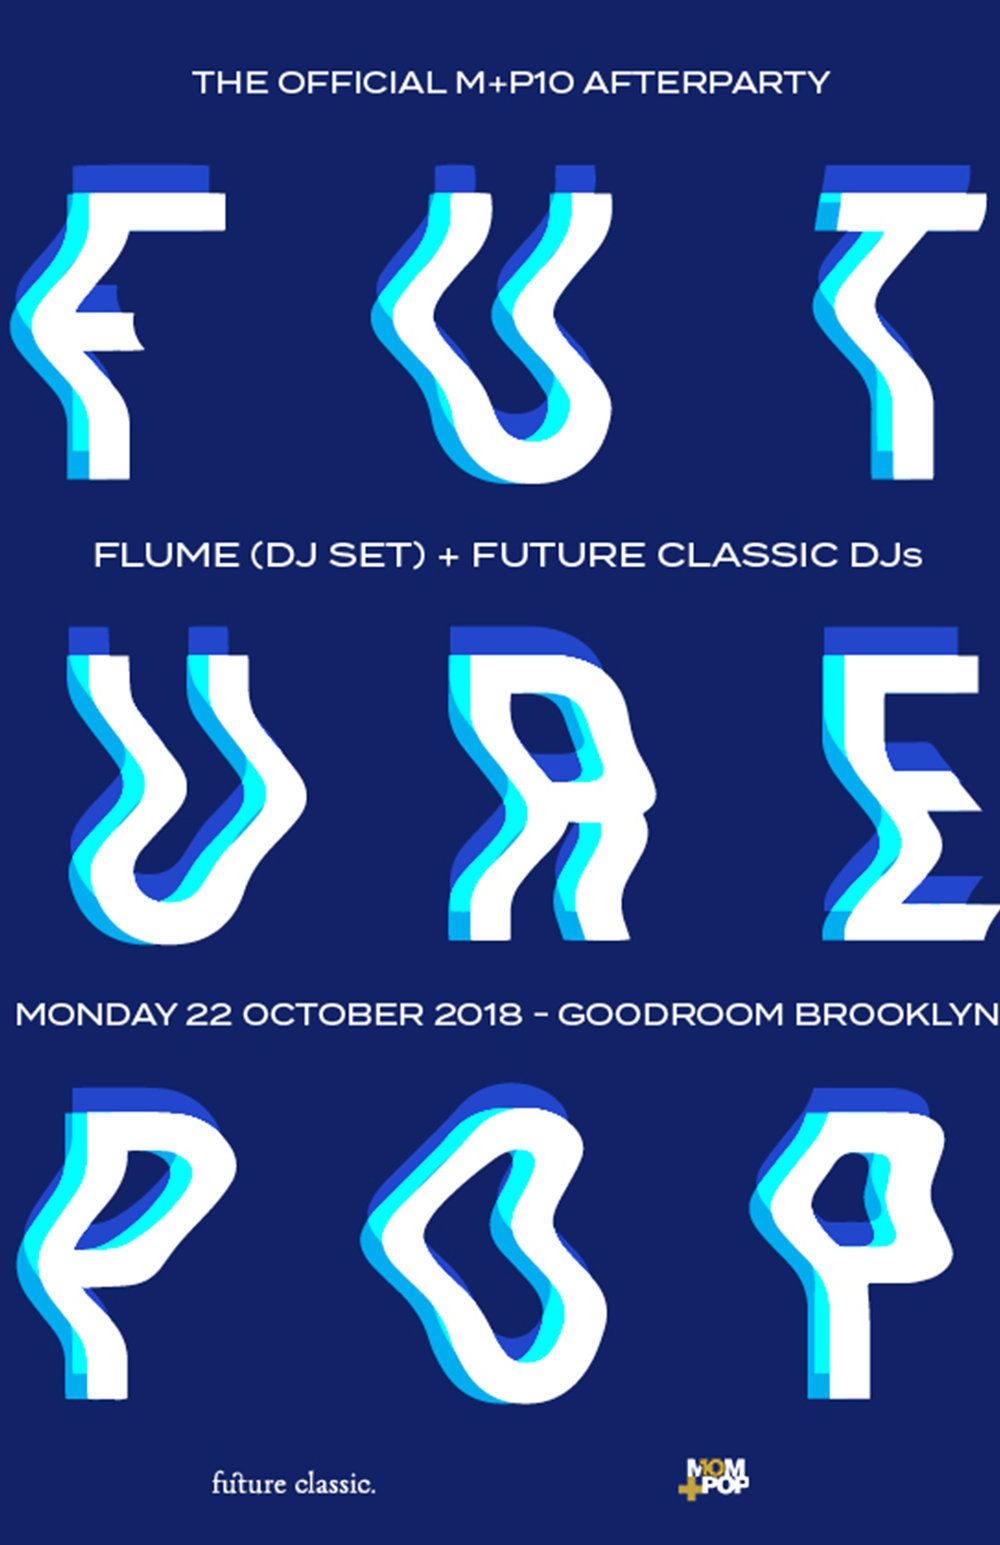 After Party [SOLD OUT] - We partnered with our extended family over at Future Classic to bring you FUTURE POP, the official after party to our Anniversary Show featuring DJ sets from Flume and the Future Classic crew. See below for show info and tickets.DATE/TIME: Monday October 22nd 2018, Doors @10 pm ESTVENUE: Good Room (98 Meserole Ave, Brooklyn, NY 11222)TICKETS: SOLD OUT